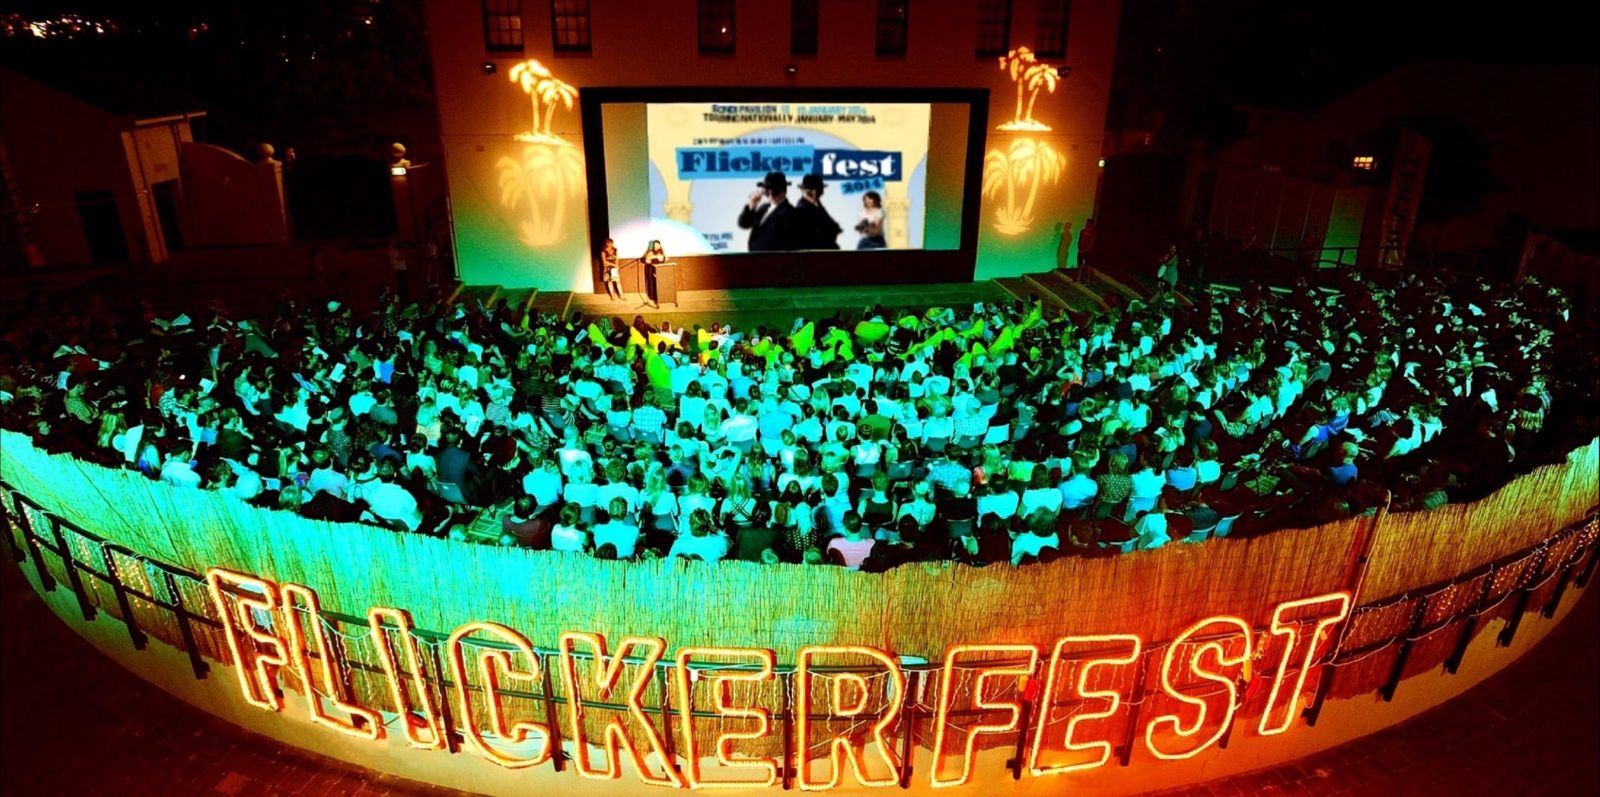 Flickerfest Short Film Festival